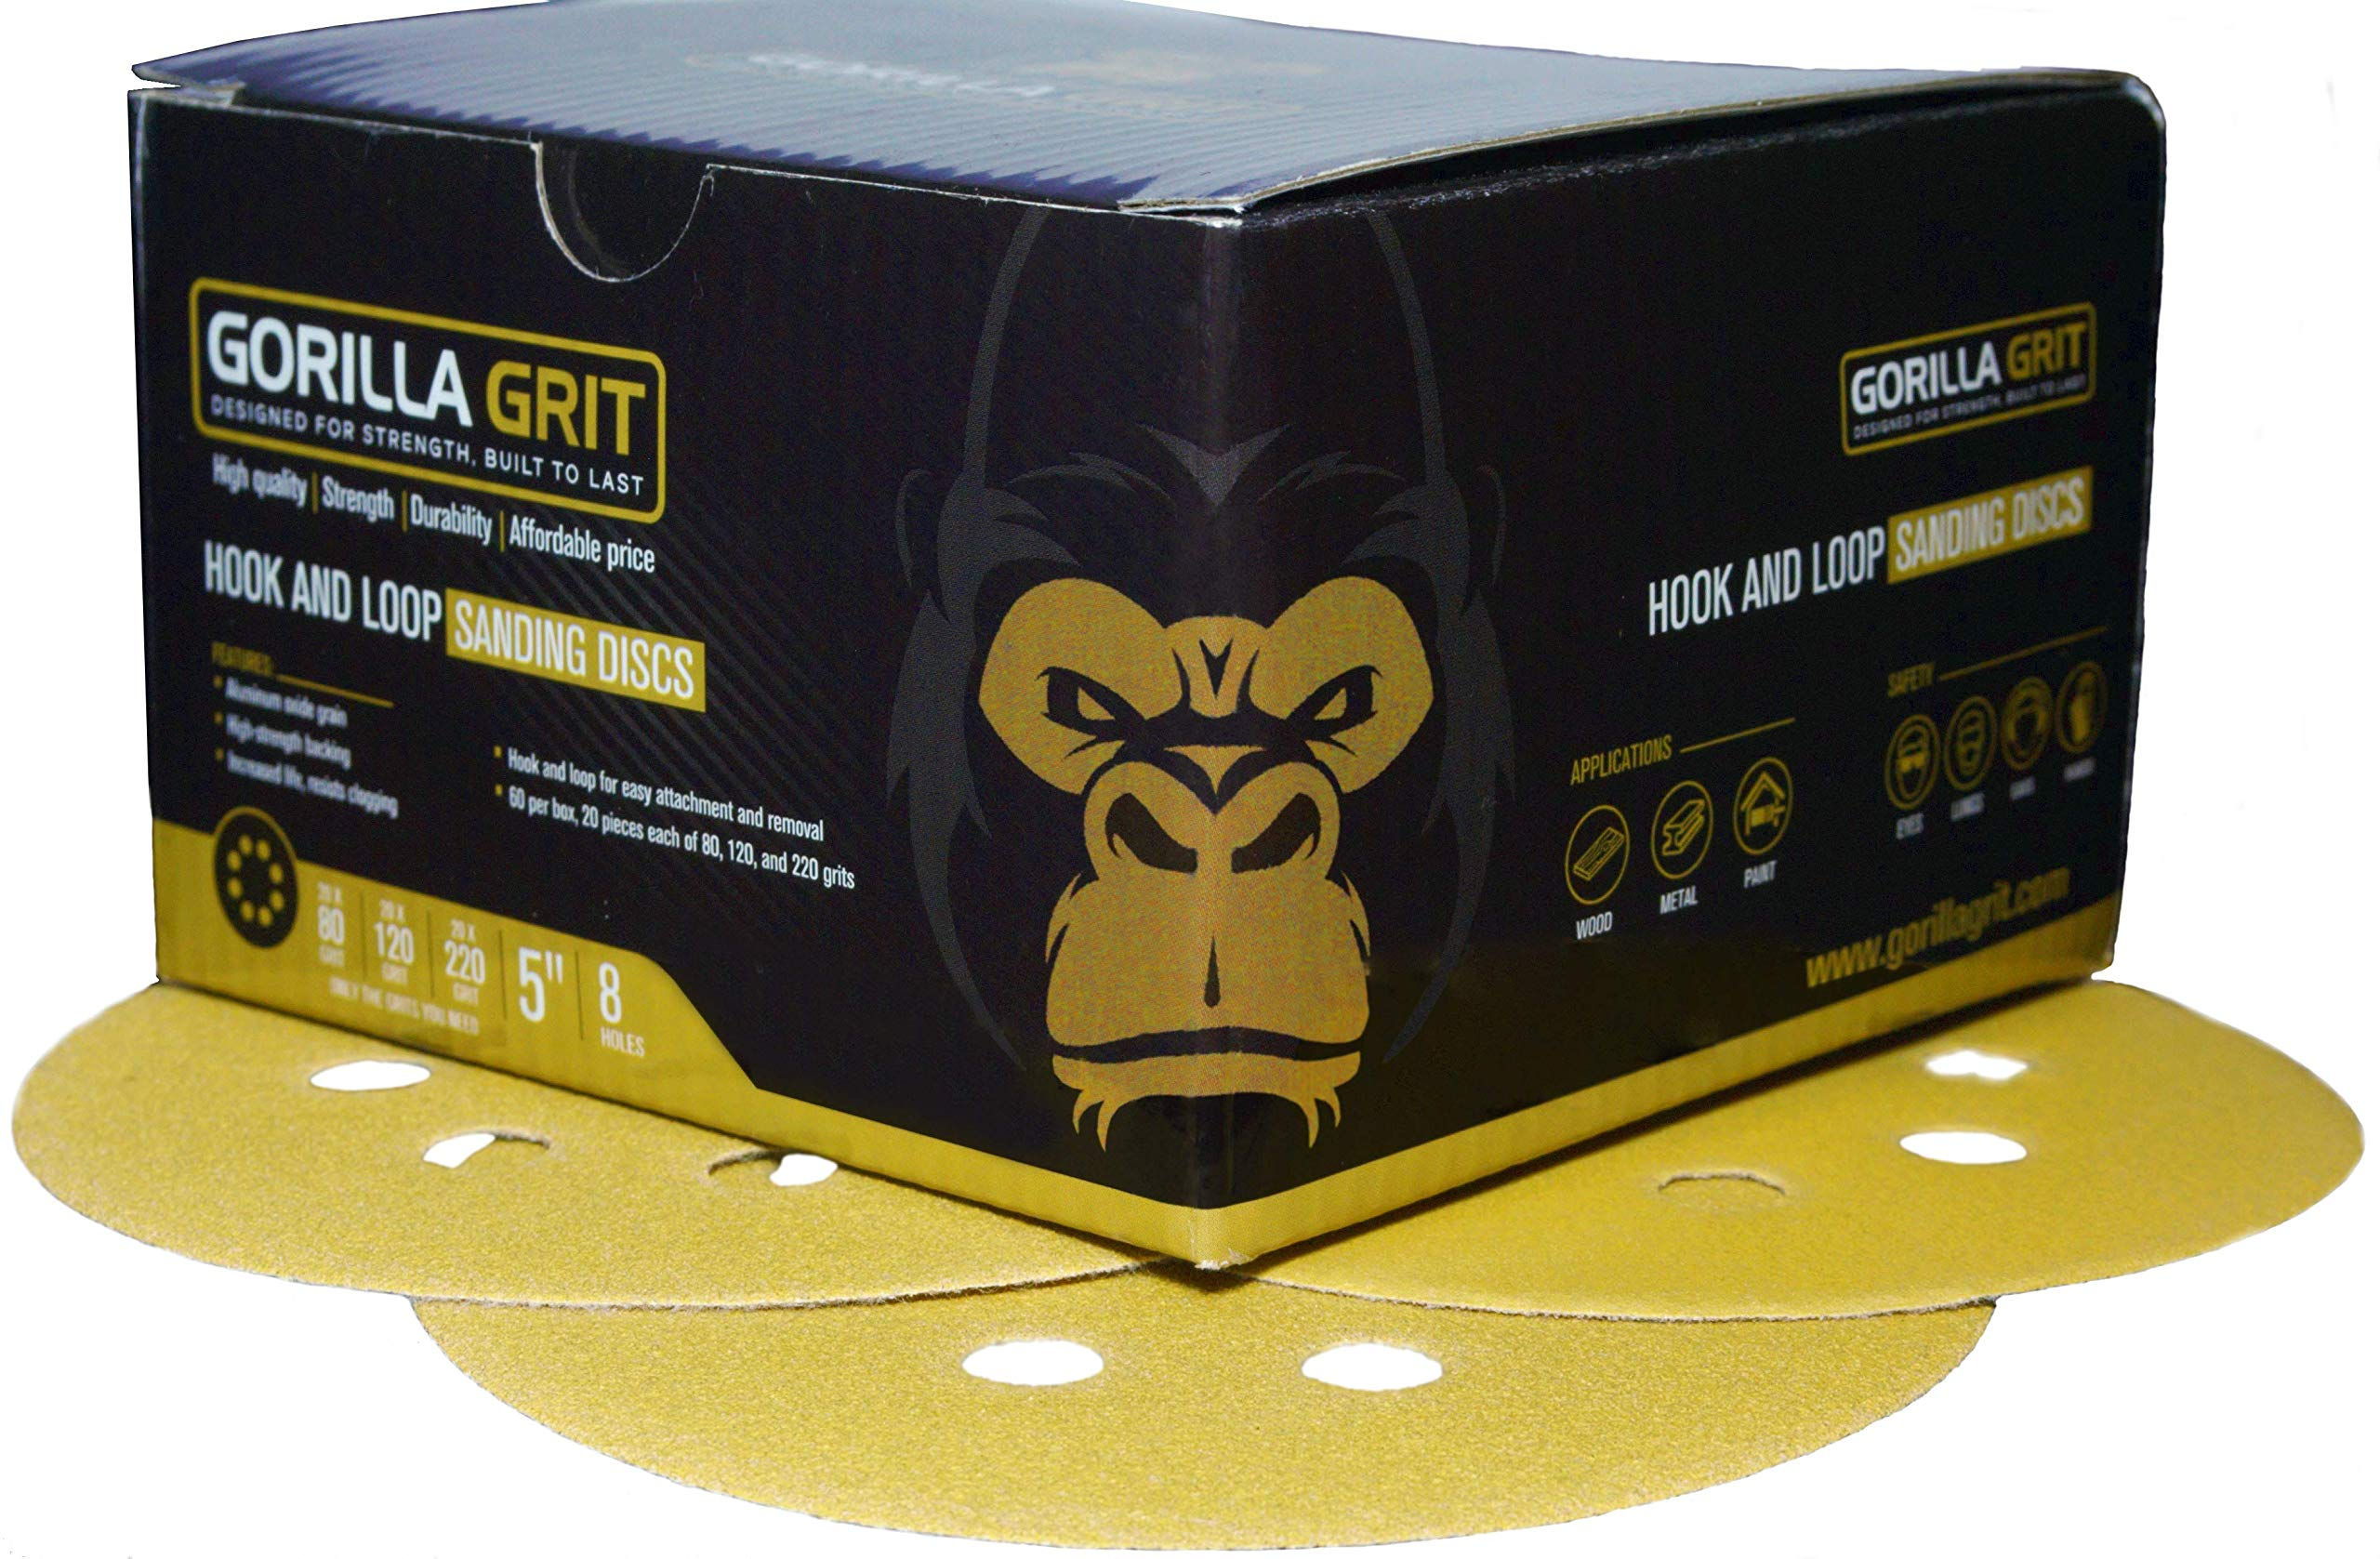 Gorilla Grit 60 PCS Sanding Discs 5 inch 8 Hole Hook and Loop for Orbital Sanders 3 Grits Assortment 20PCS Each 80/120/220 Premium Abrasive Sandpaper Pads for Wood and Metal Surfaces